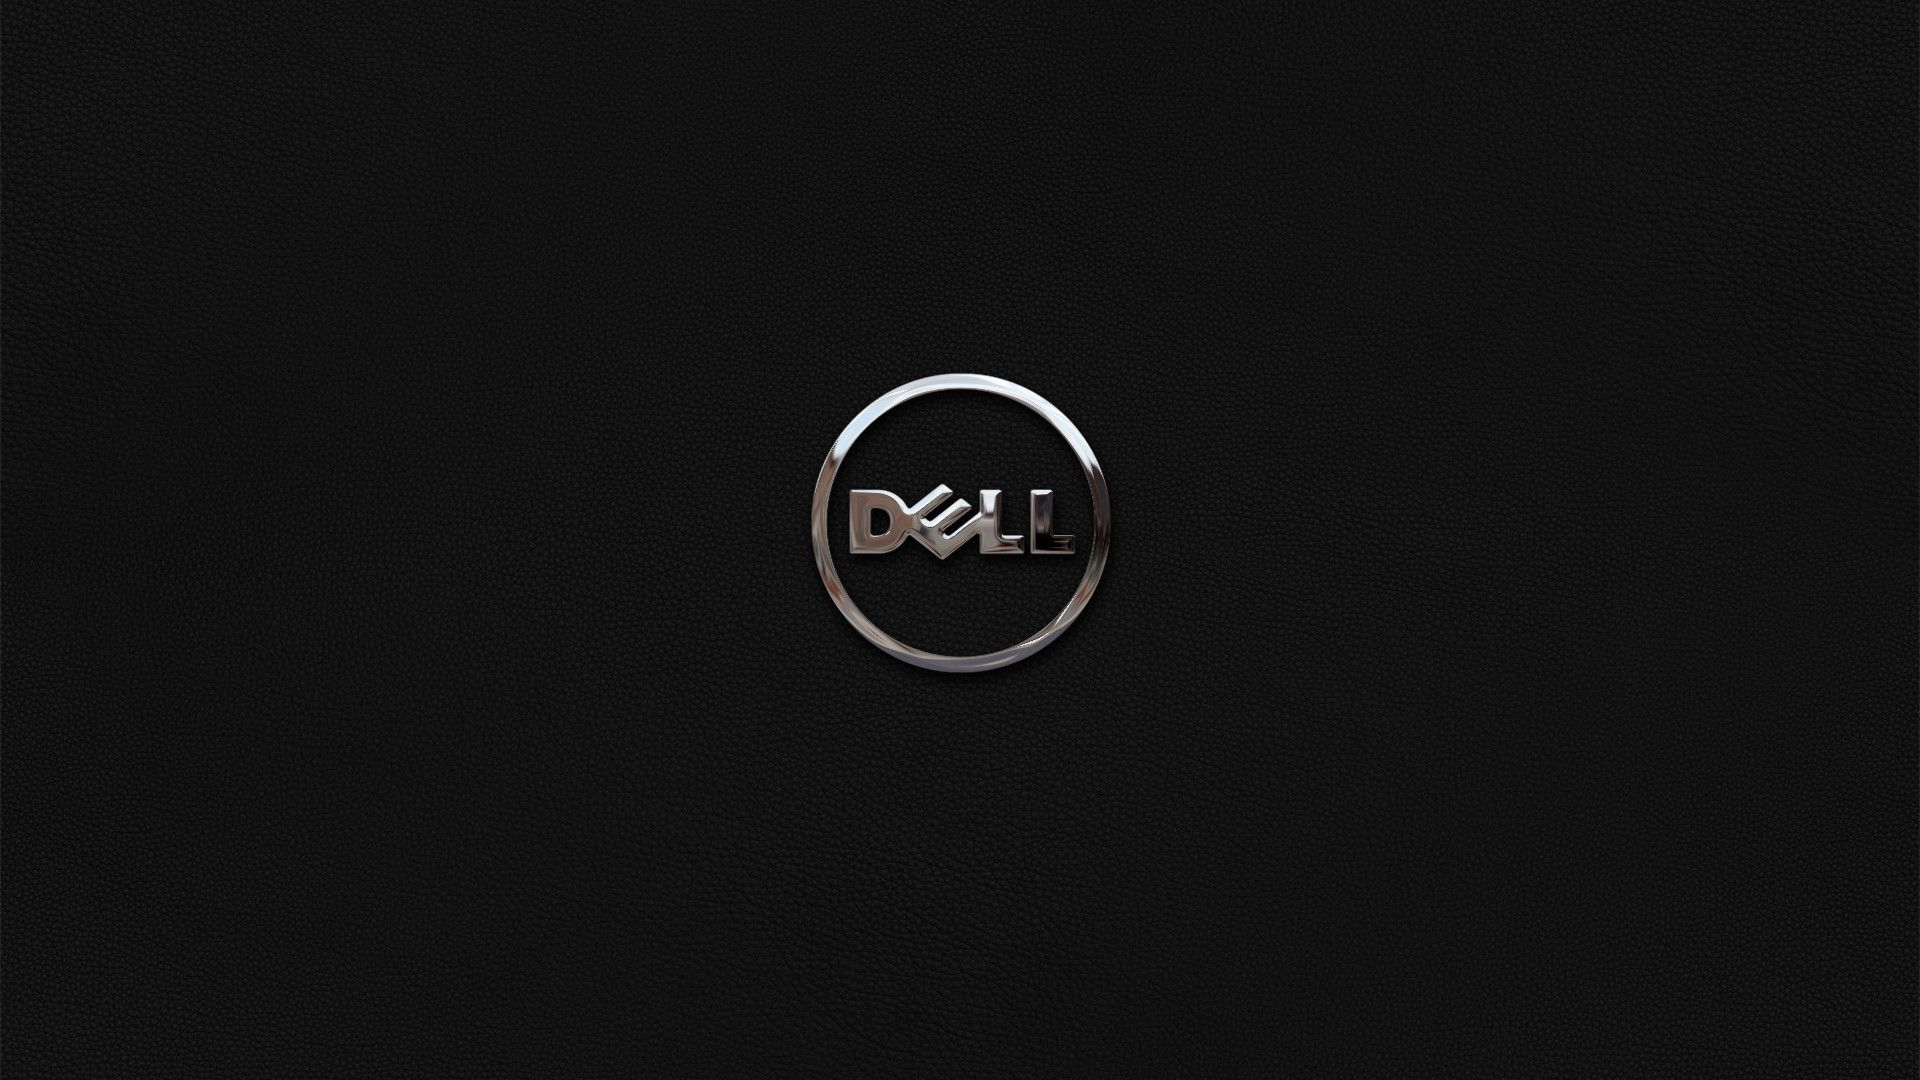 Dell 4K Wallpapers   Top Dell 4K Backgrounds   WallpaperAccess 1920x1080